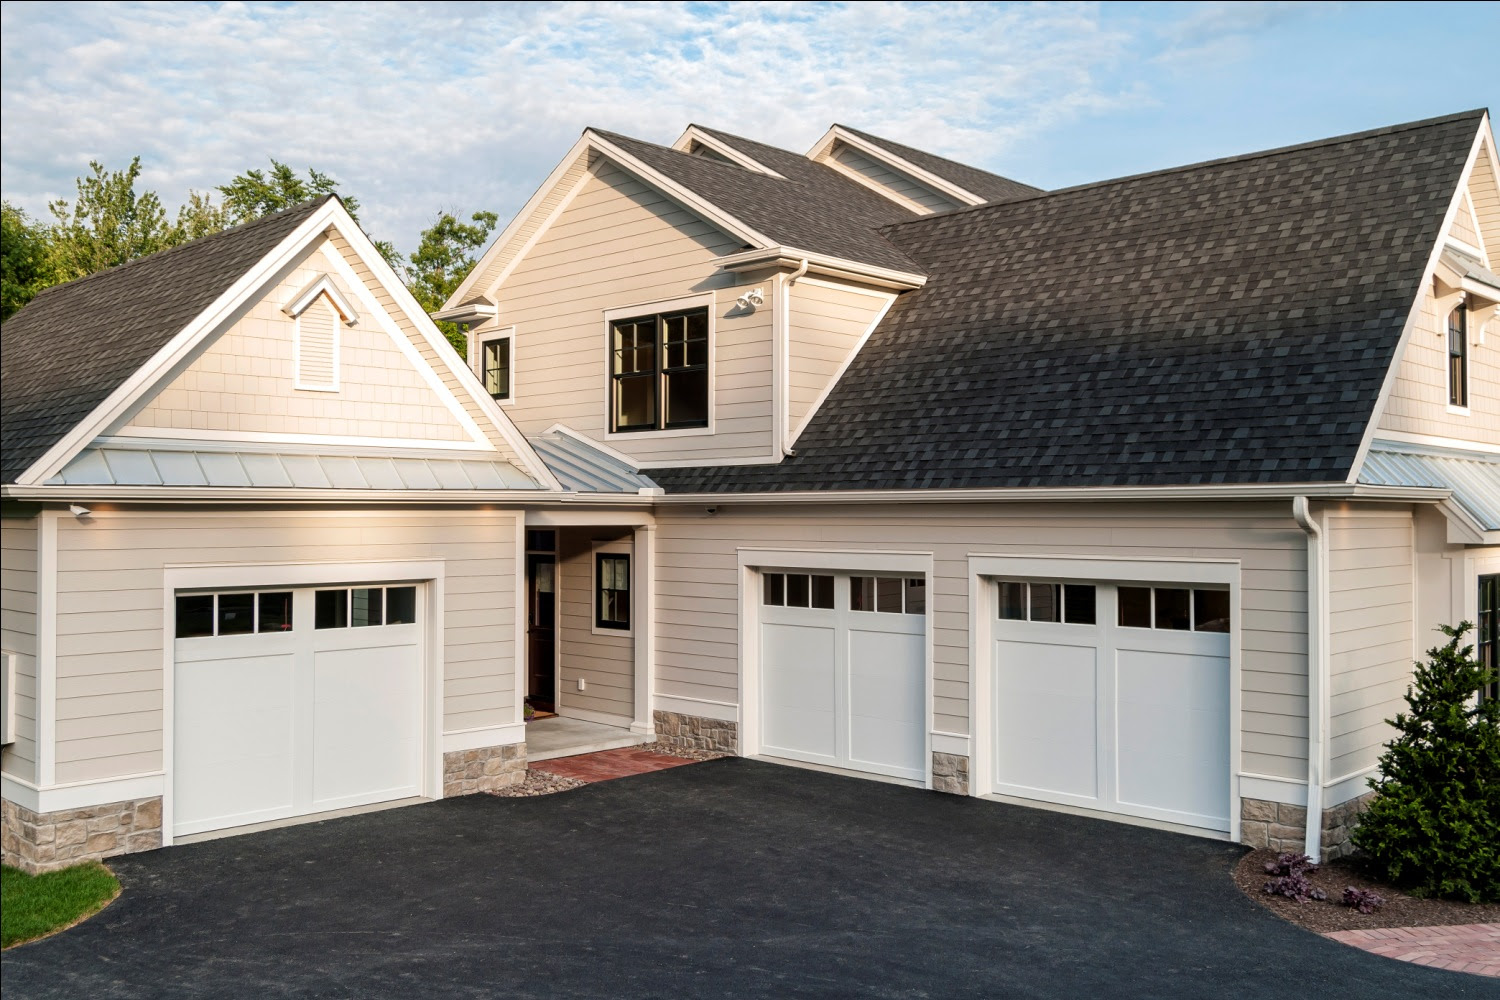 Home for sale in Harrisburg PAFarinelli Construction Inc